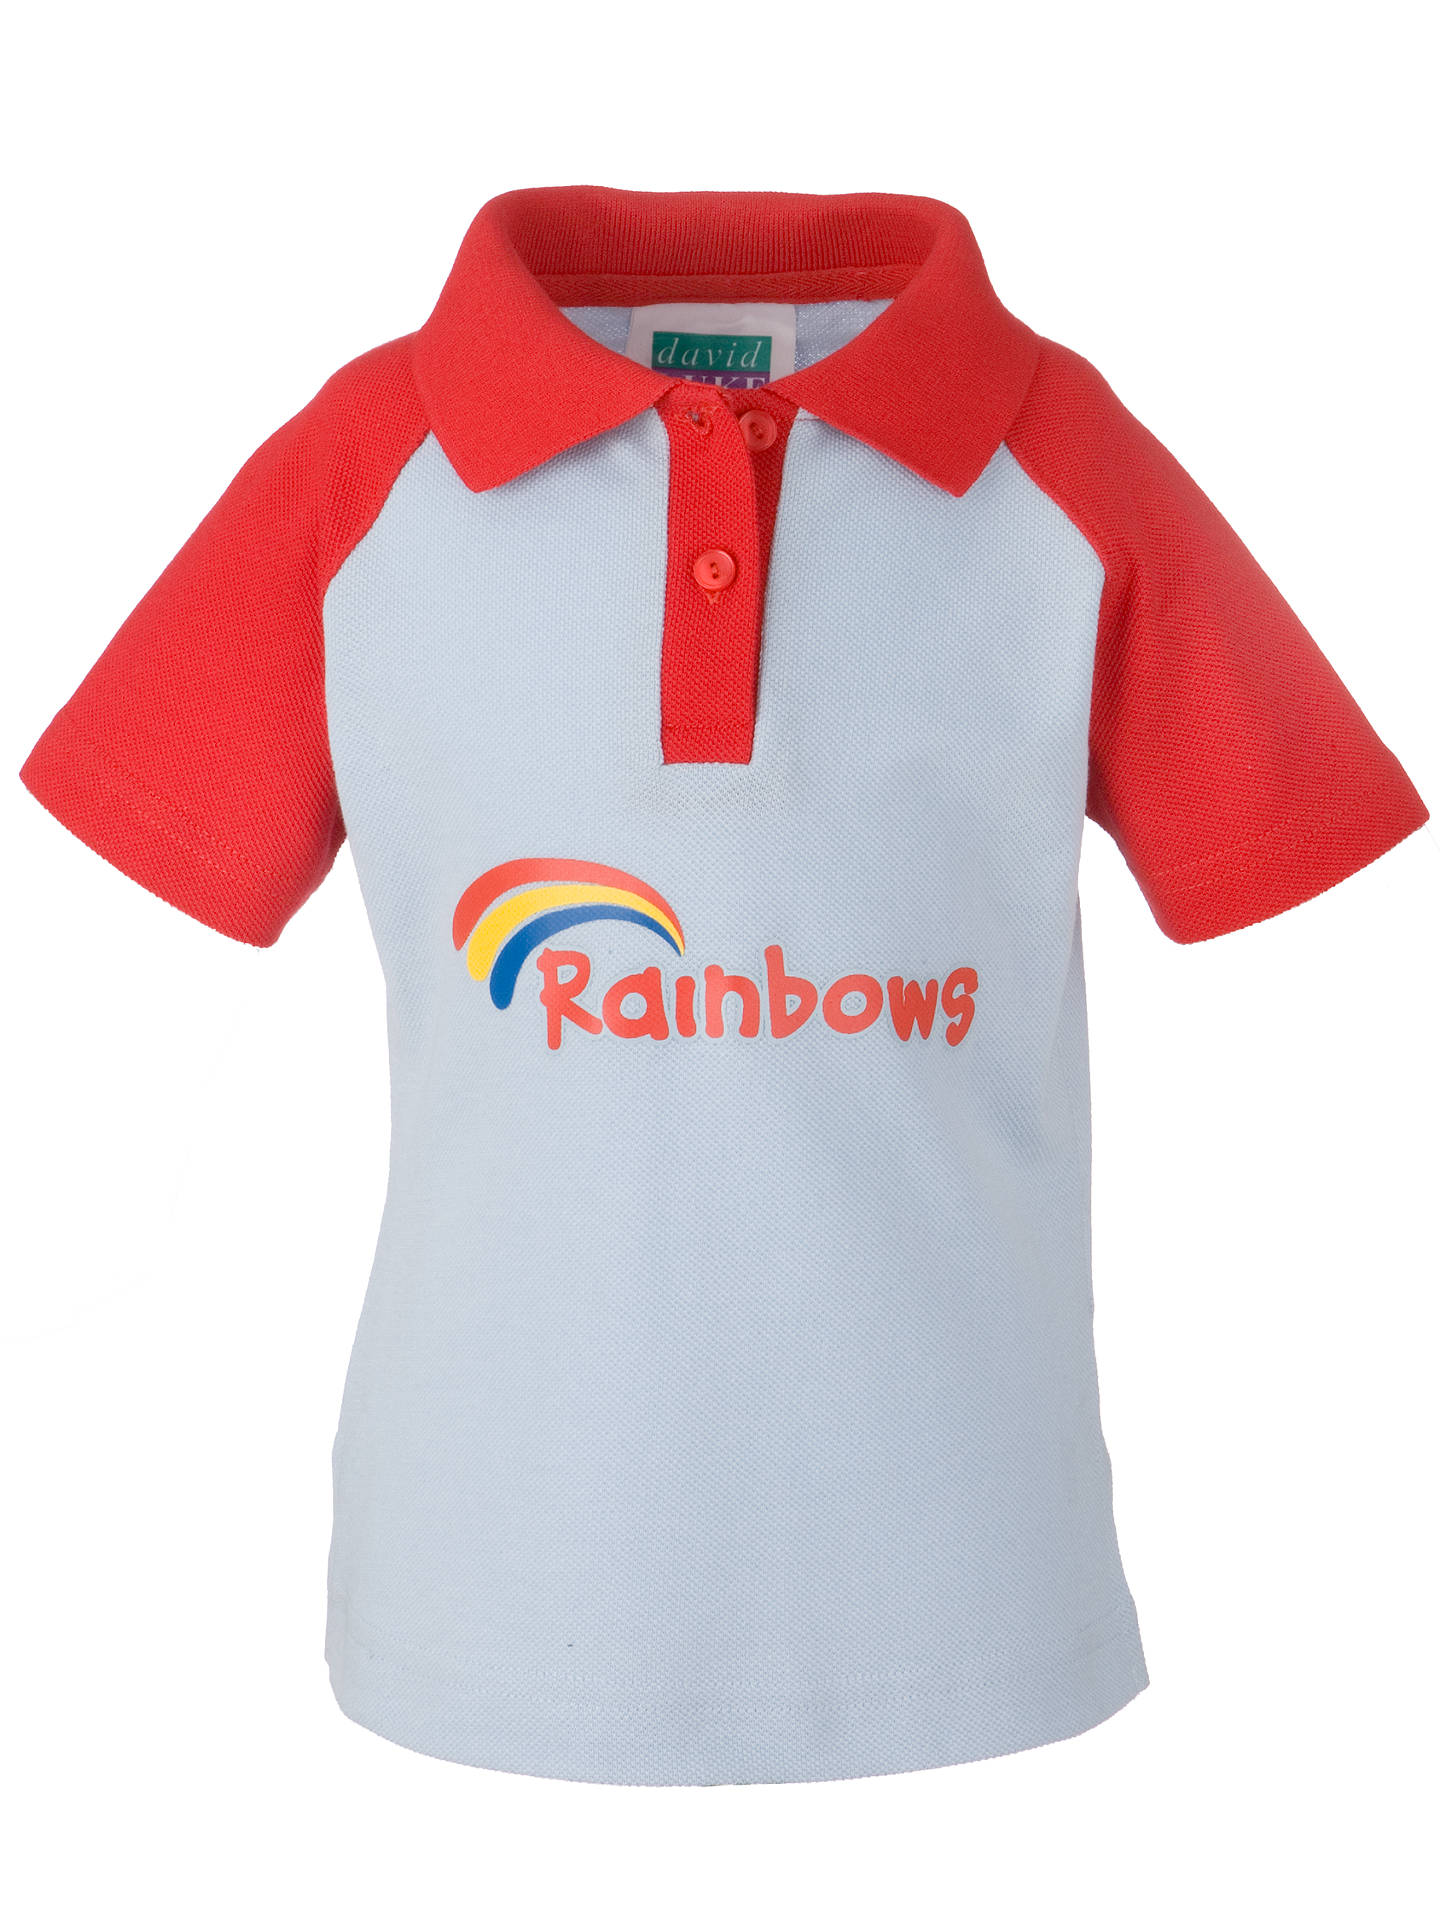 Buy Rainbows Uniform Short Sleeve Polo Shirt, Red, Small Online at johnlewis.com